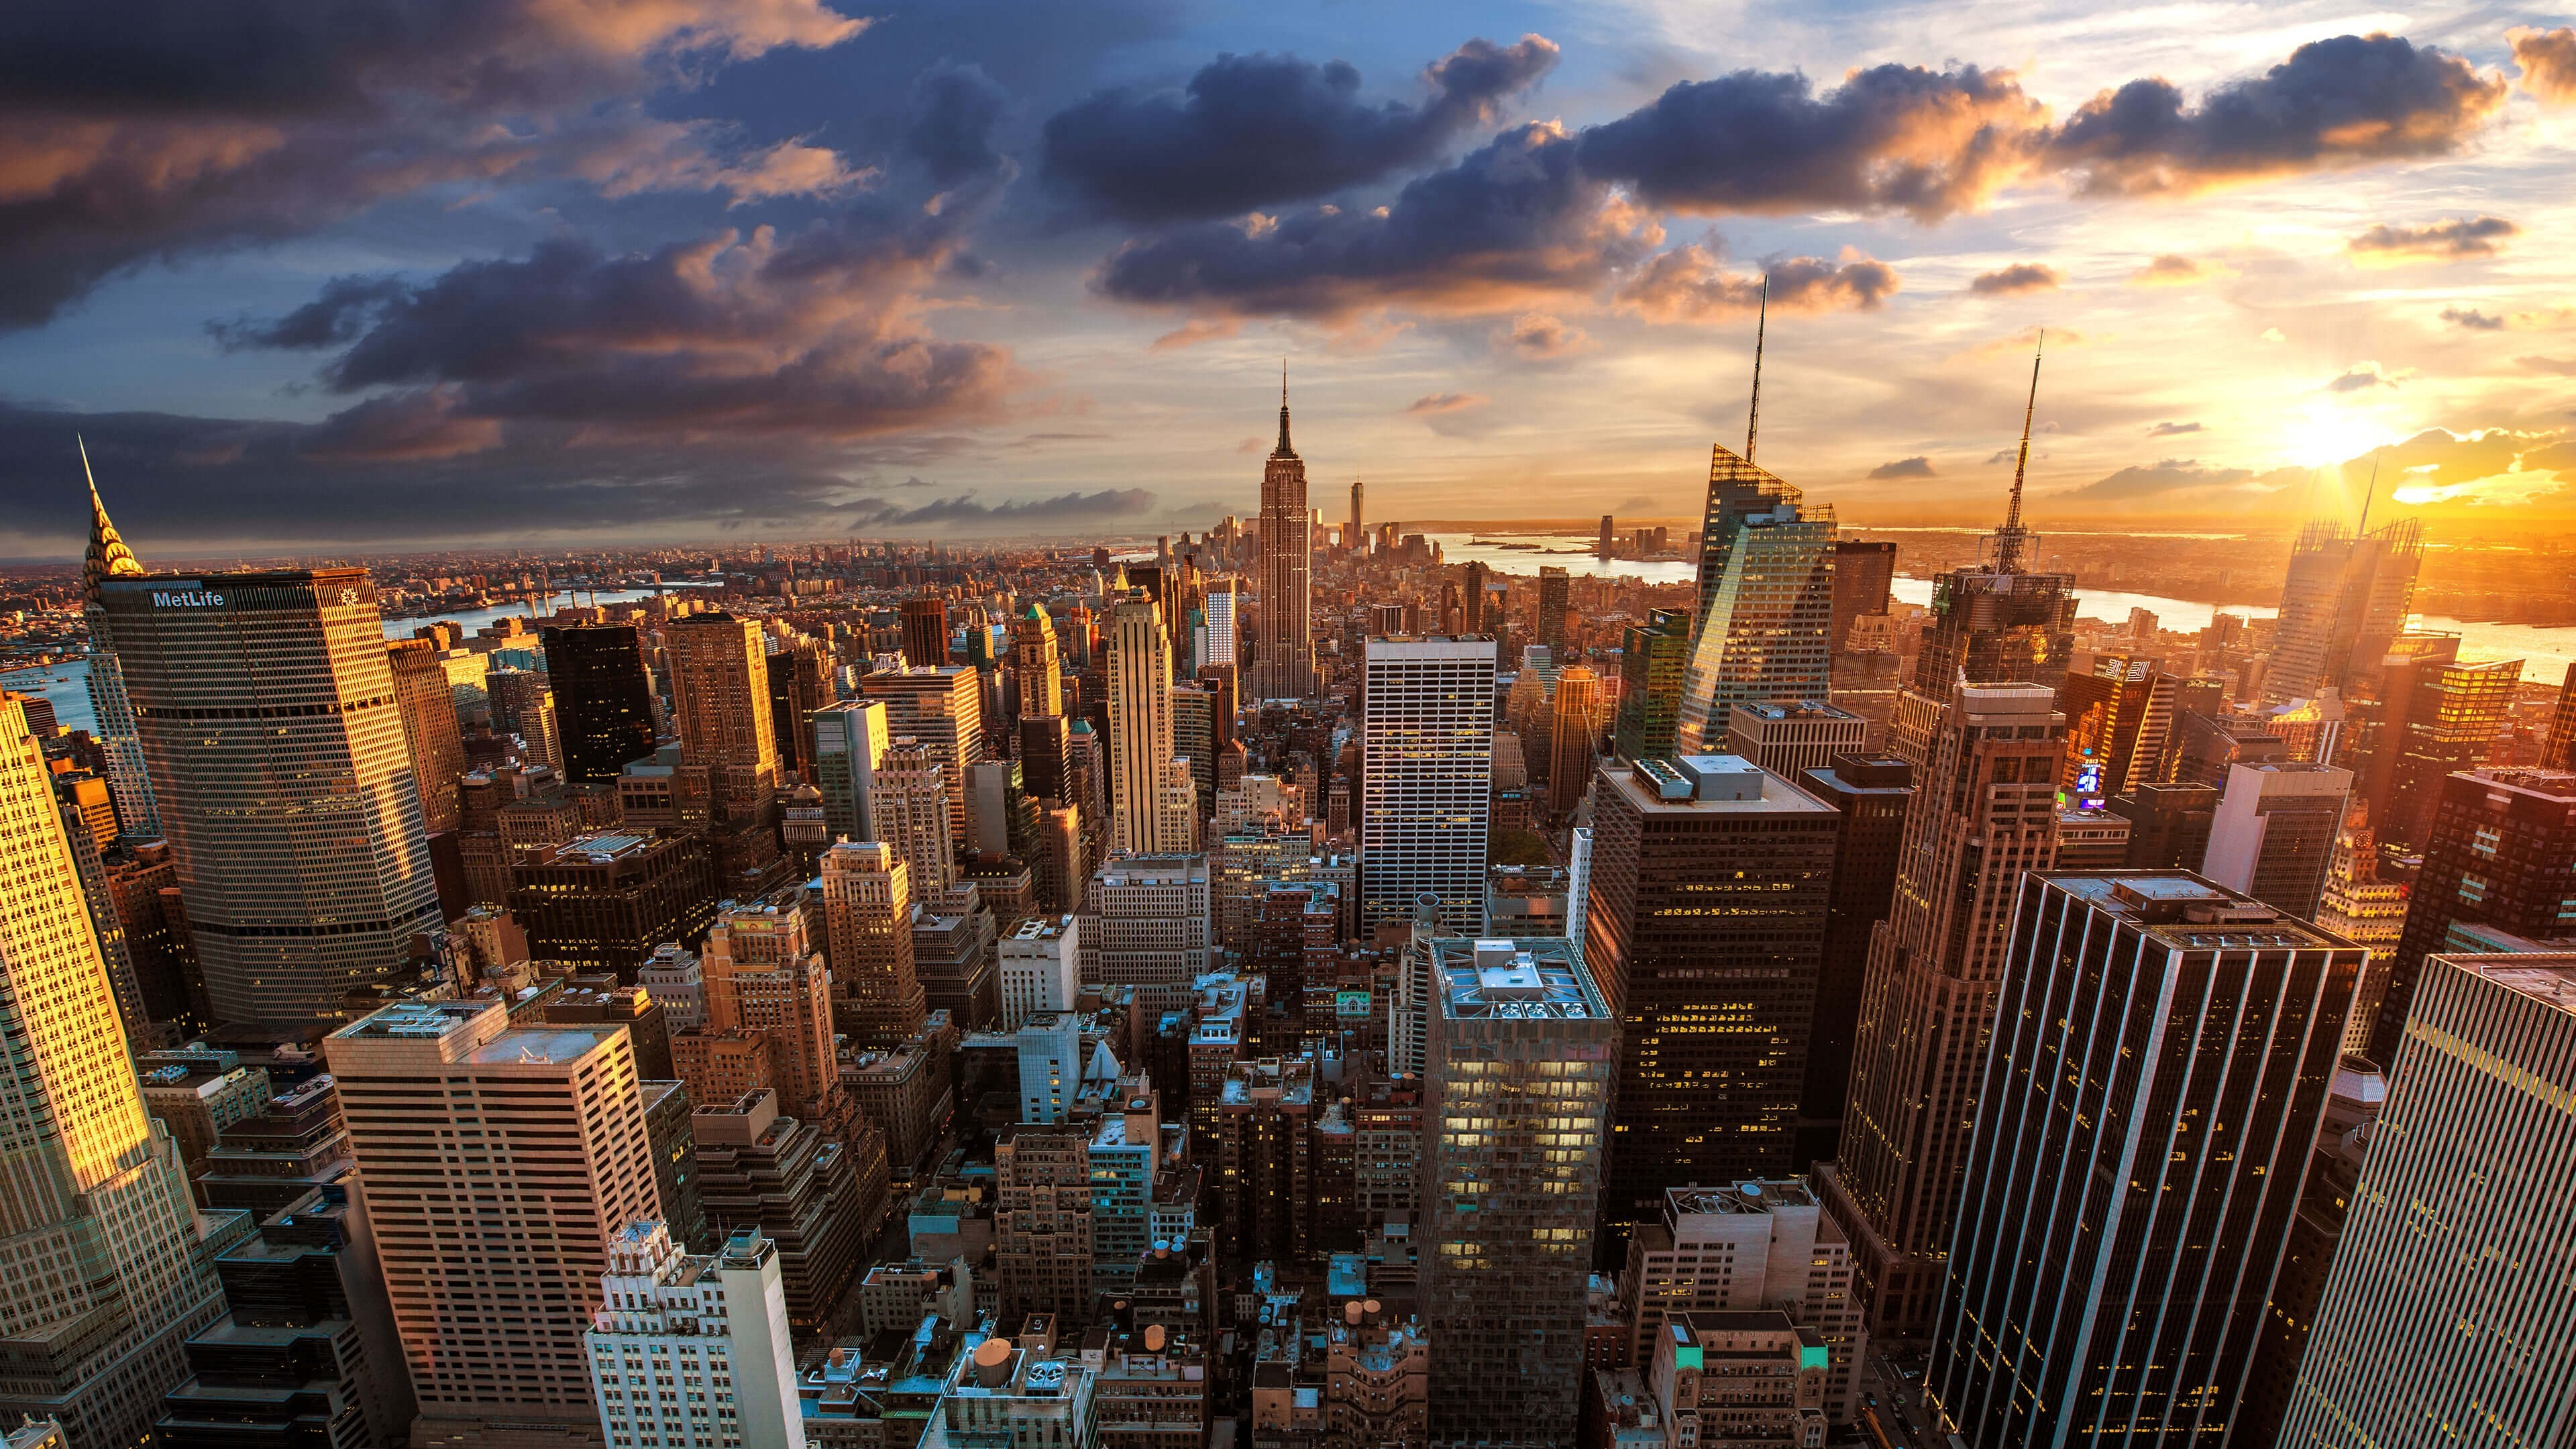 3840x2160 new-york-city-skyline-at-sunset-wallpaper-for-